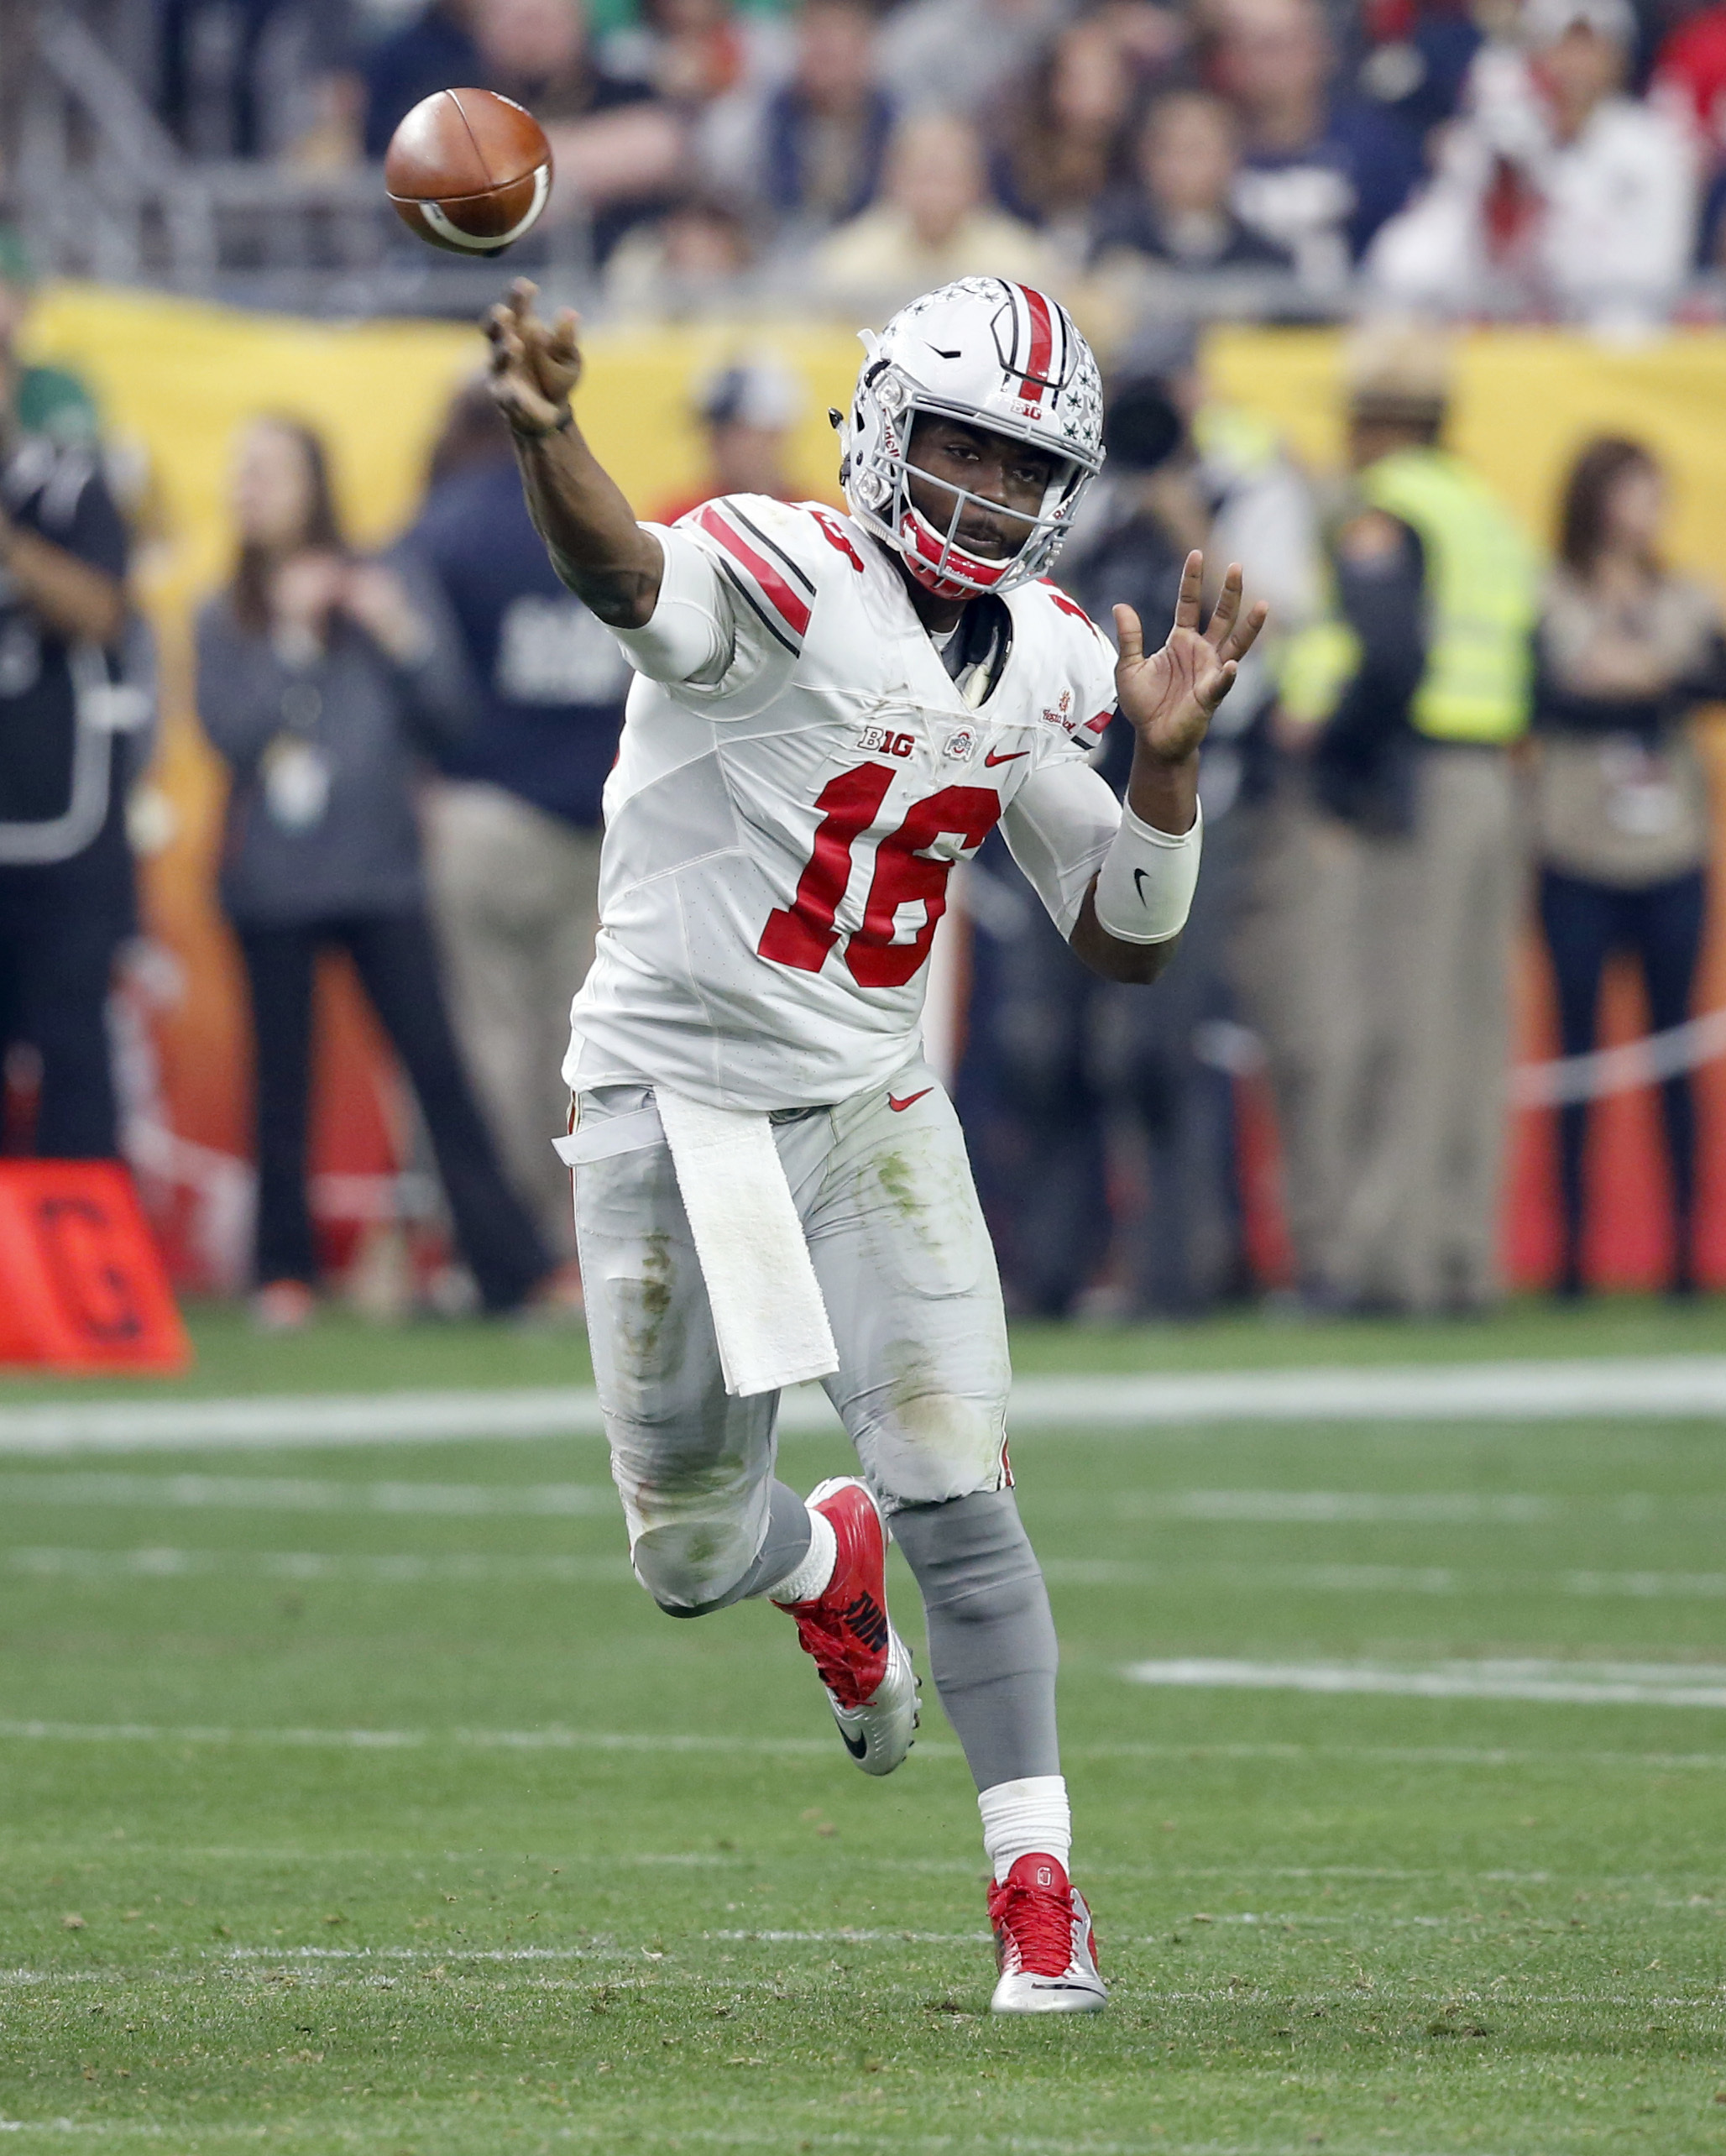 FILE - In this Jan. 1, 2016, file photo, Ohio State quarterback J.T. Barrett (16) throws against Notre Dame during the second half of the Fiesta Bowl NCAA College football game, in Glendale, Ariz. Last year,  Barrett was beaten out by Cardale Jones in the